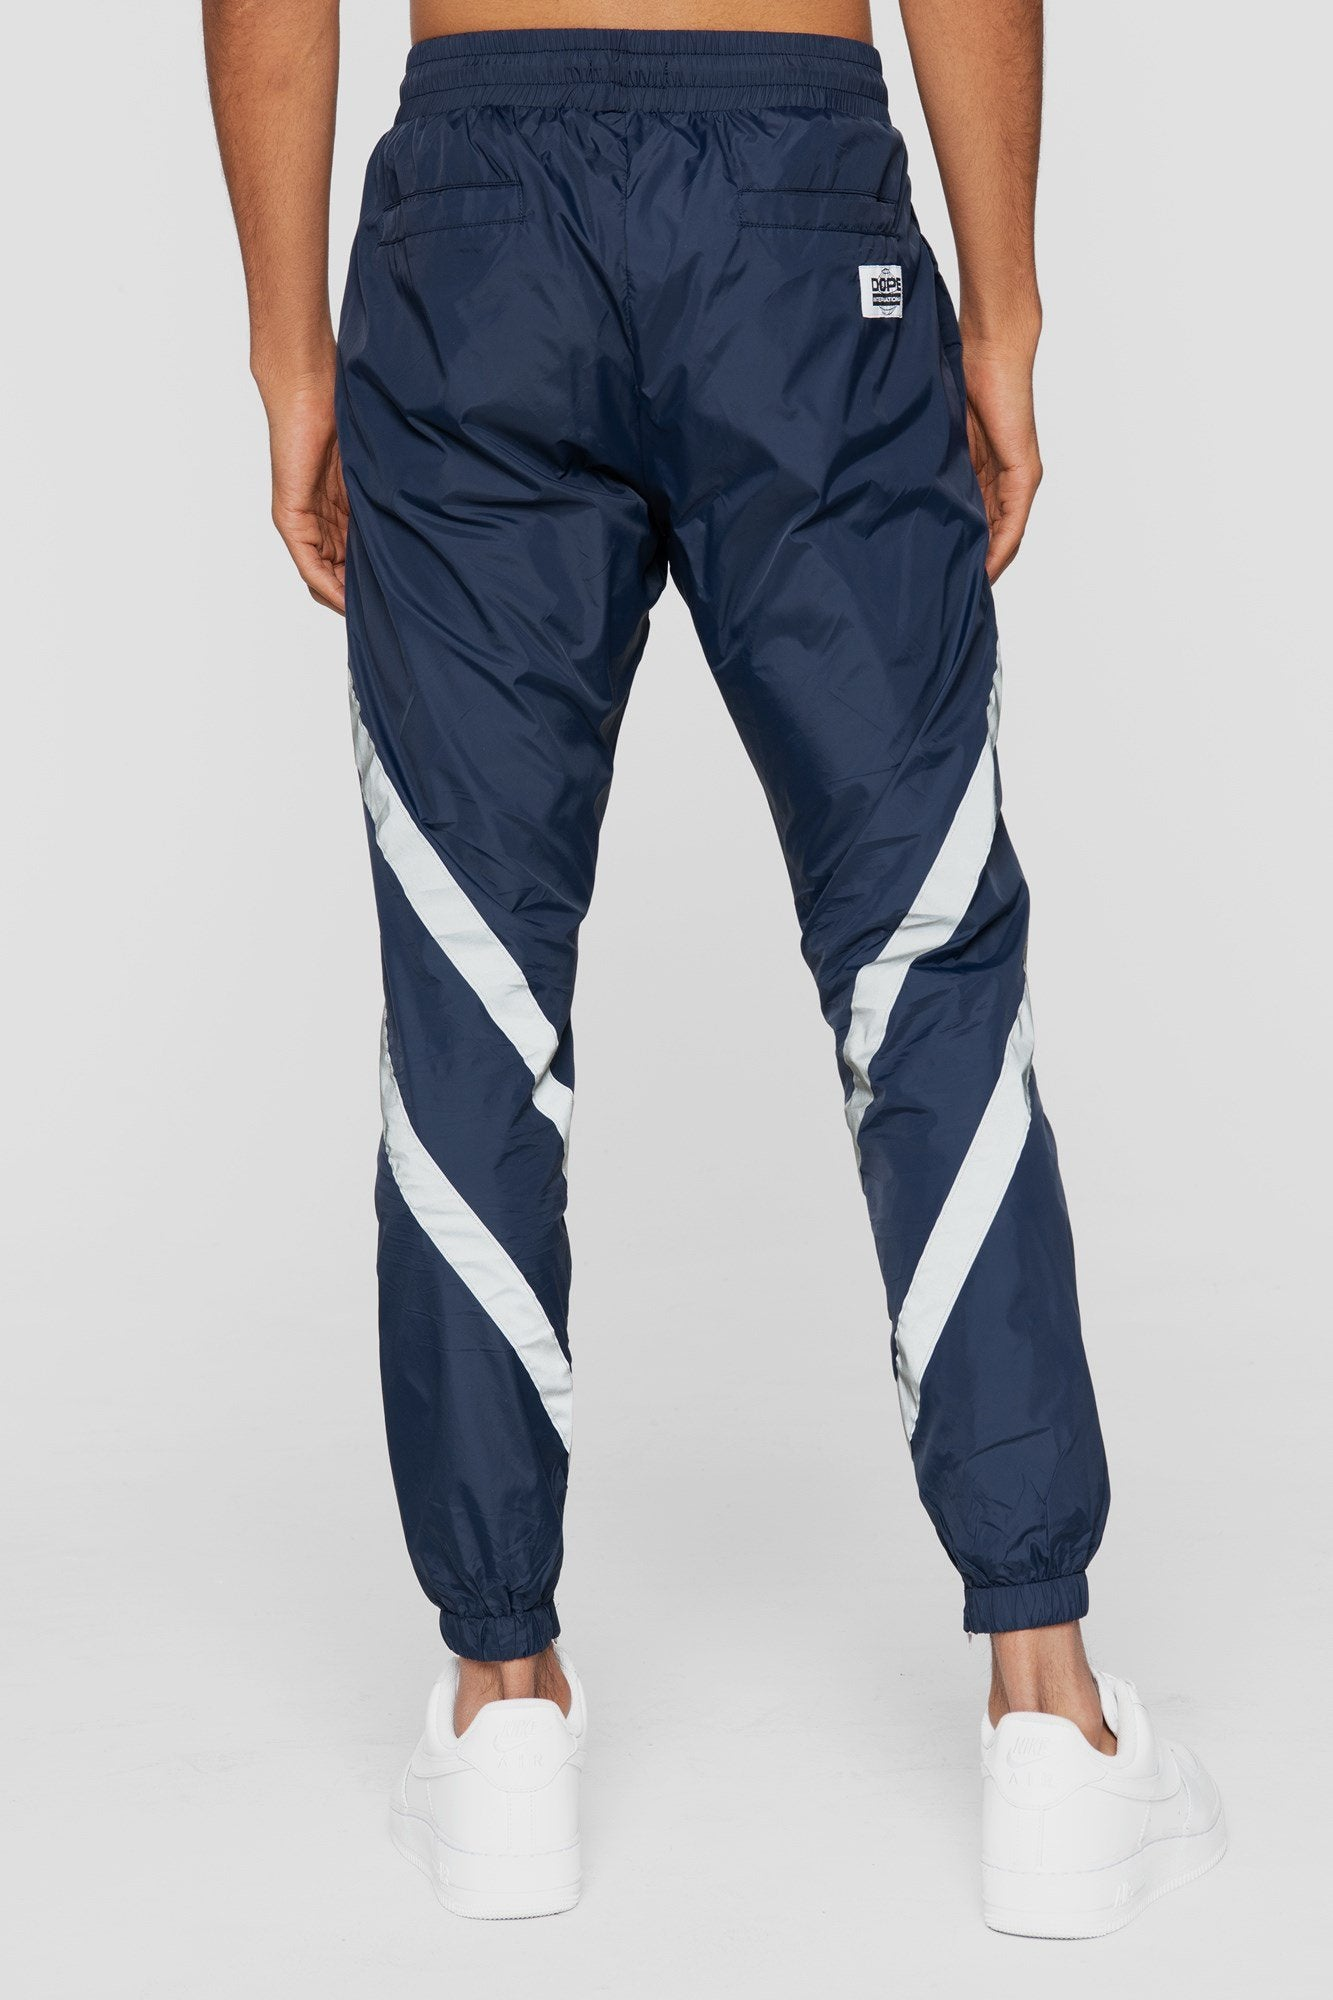 DOPE Wired Reflective Joggers #Blue